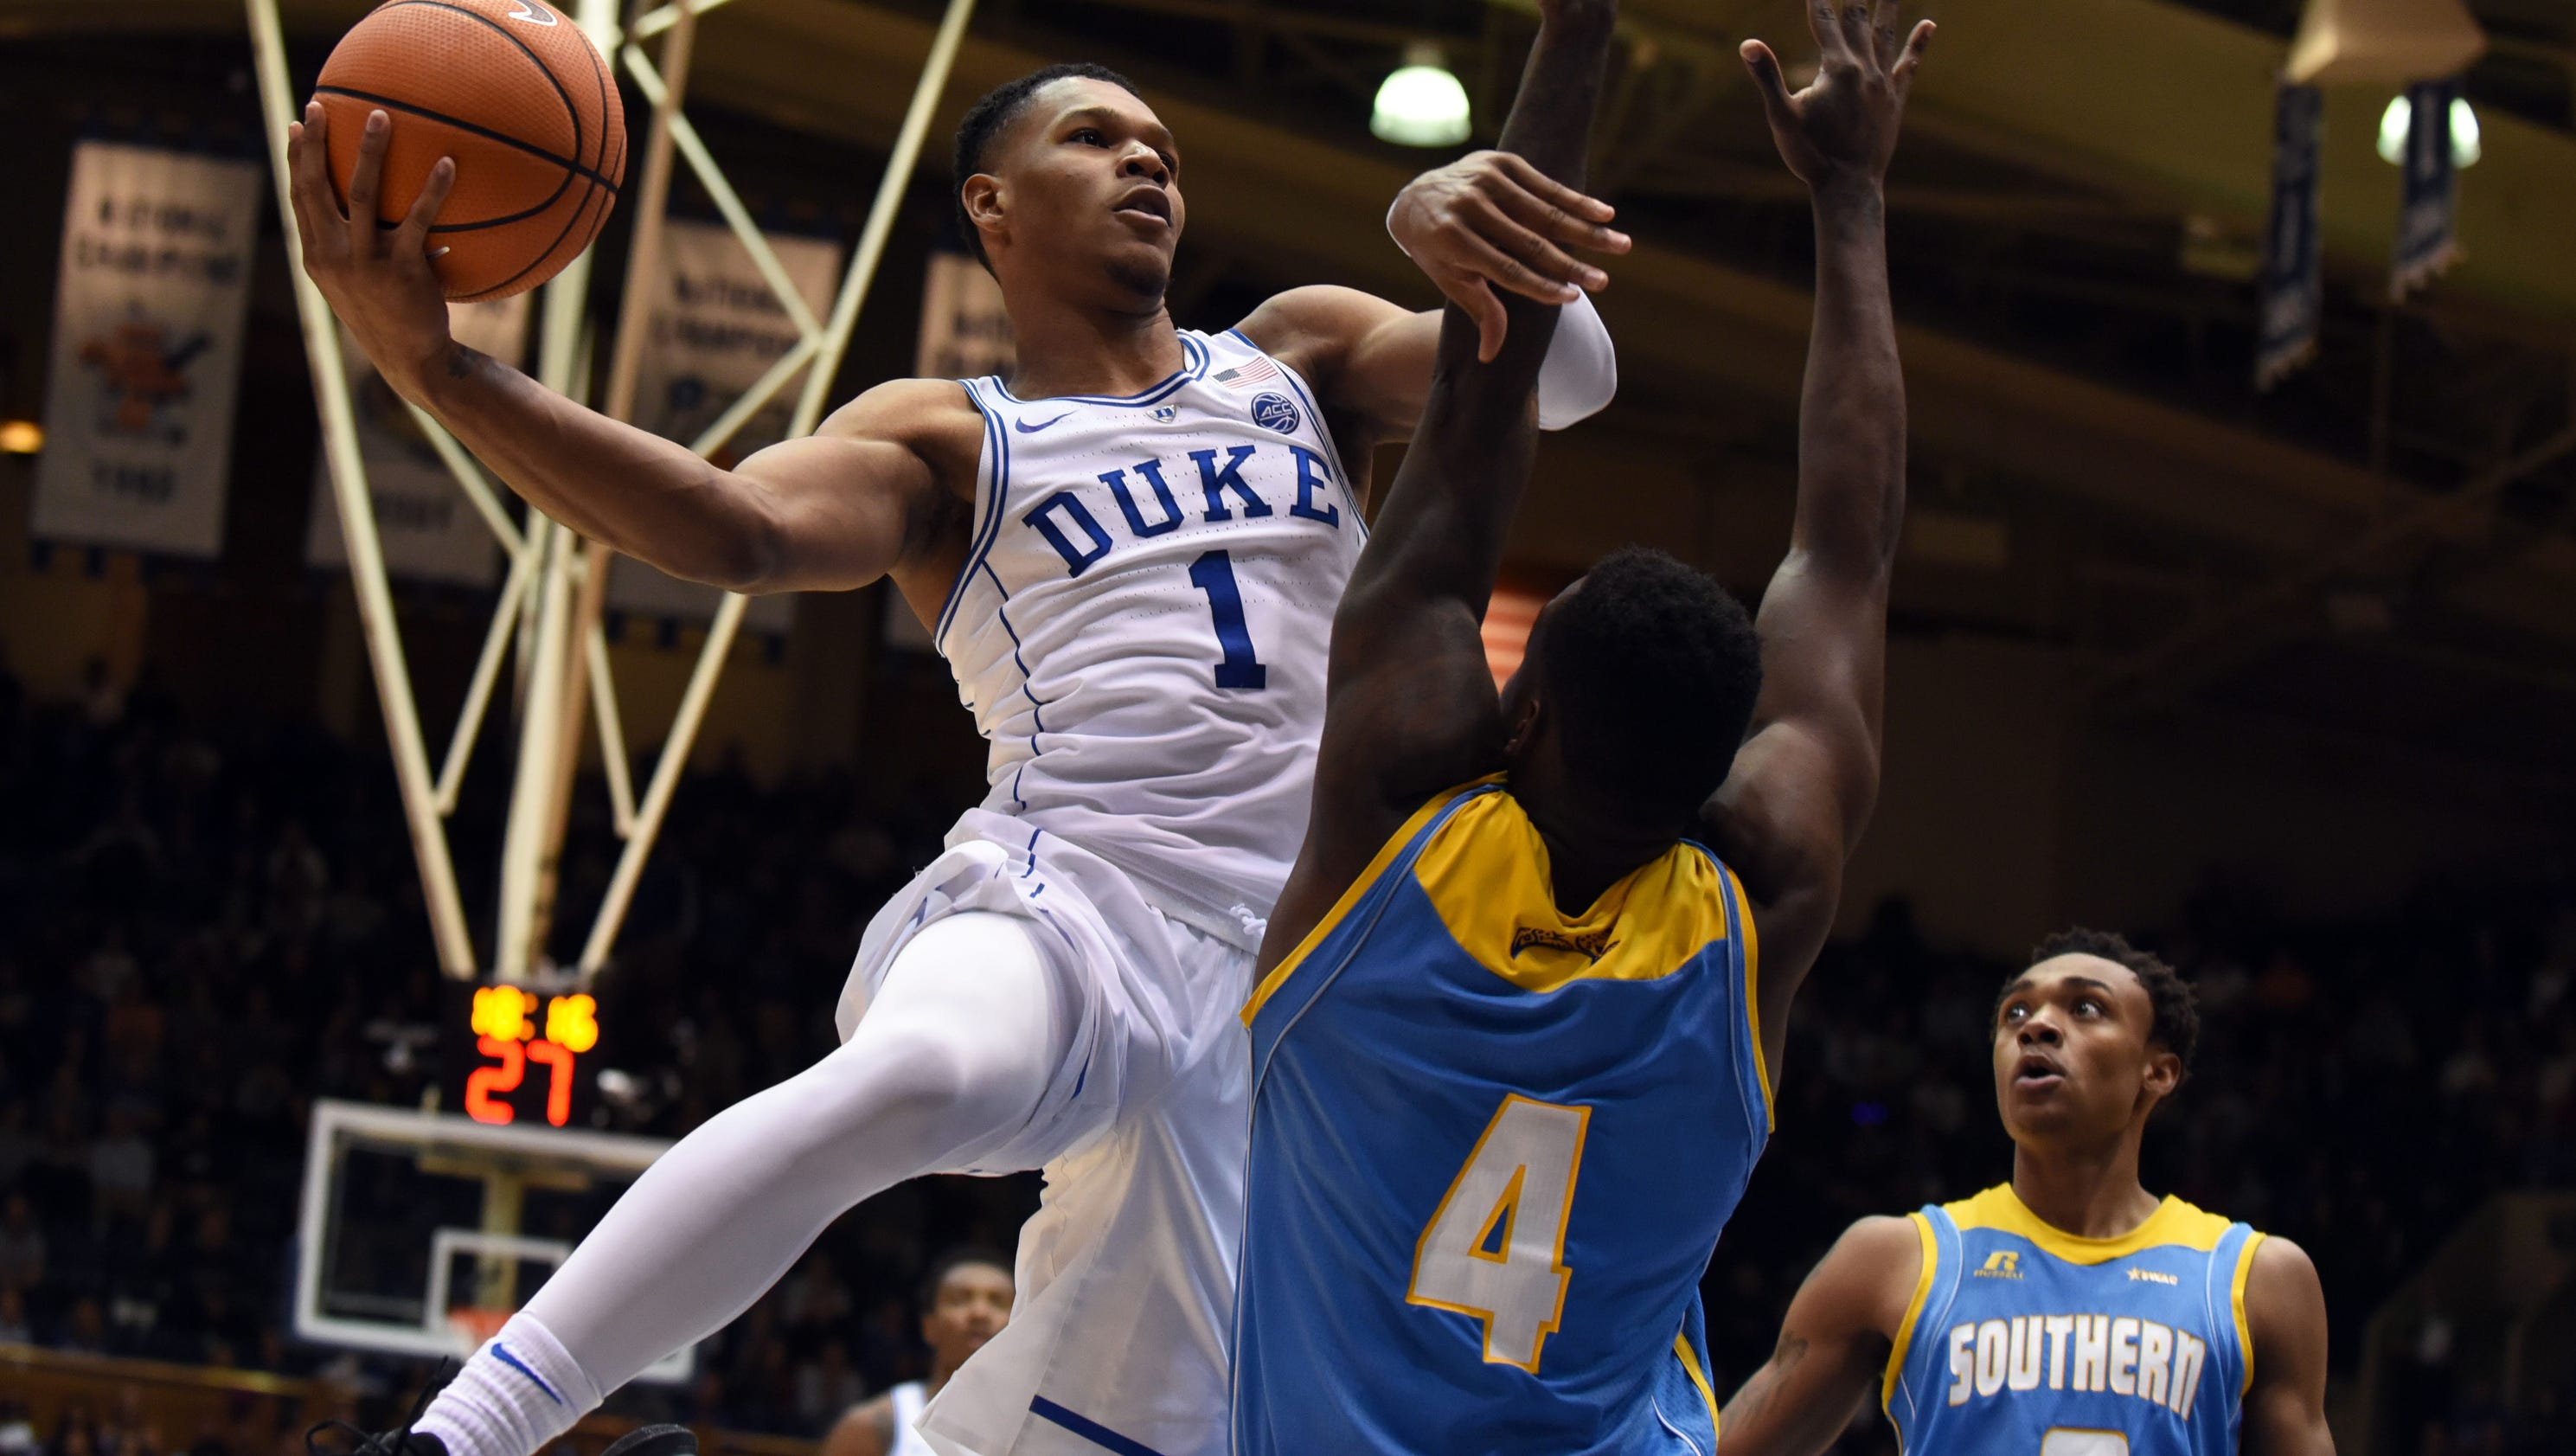 Duke remains No. 1 in latest USA TODAY men's basketball poll